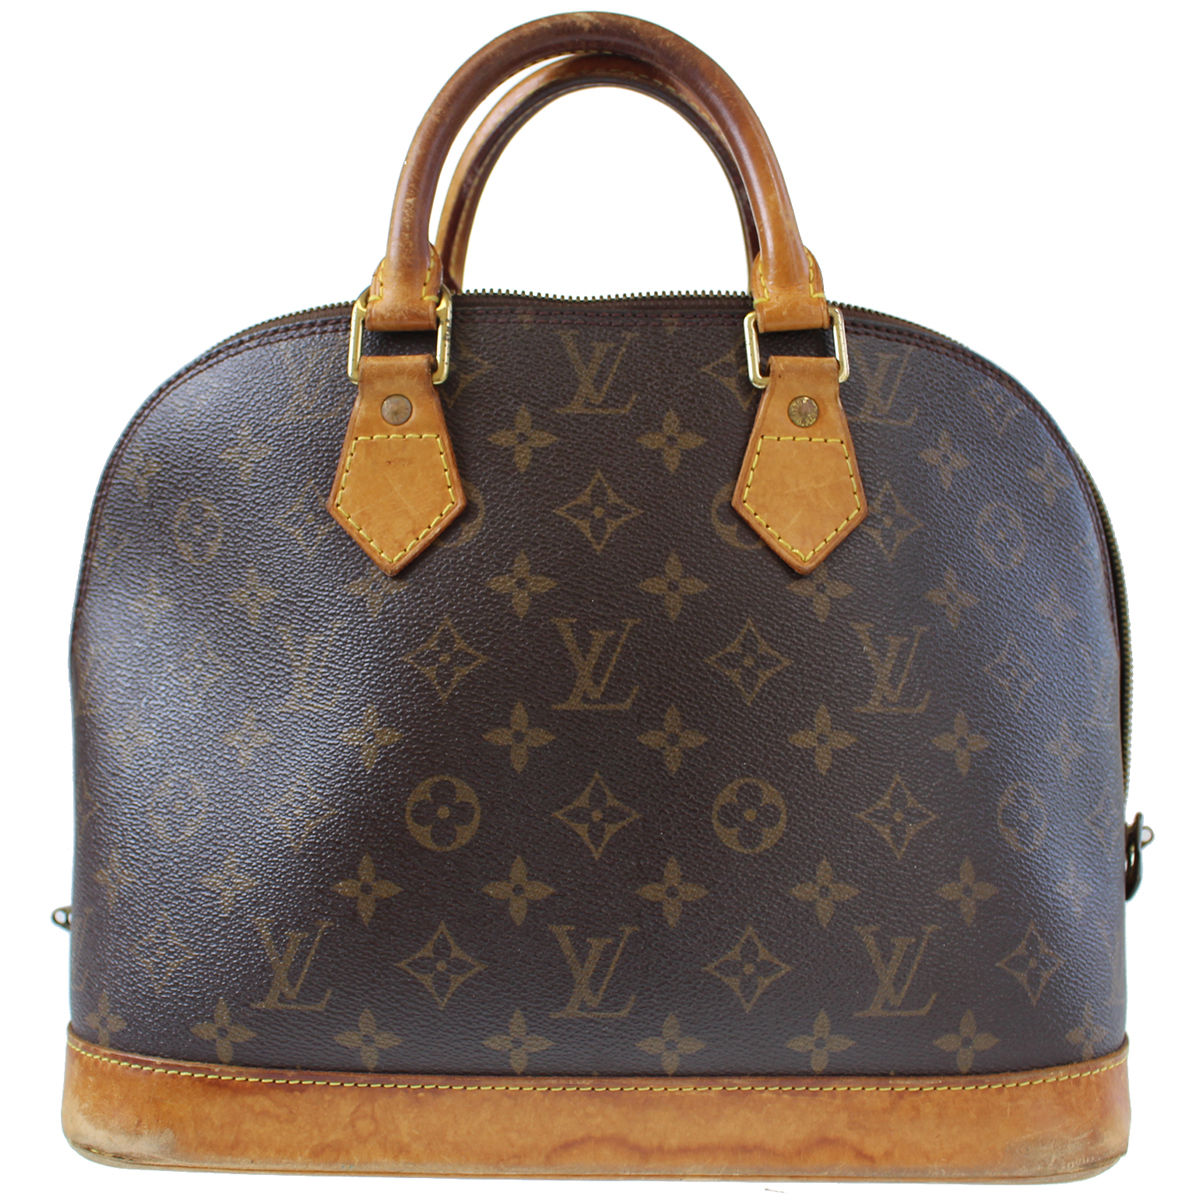 d767fd22c190 LOUIS VUITTON Alma Hand Bag Brown Monogram Leather - BkaysVintage